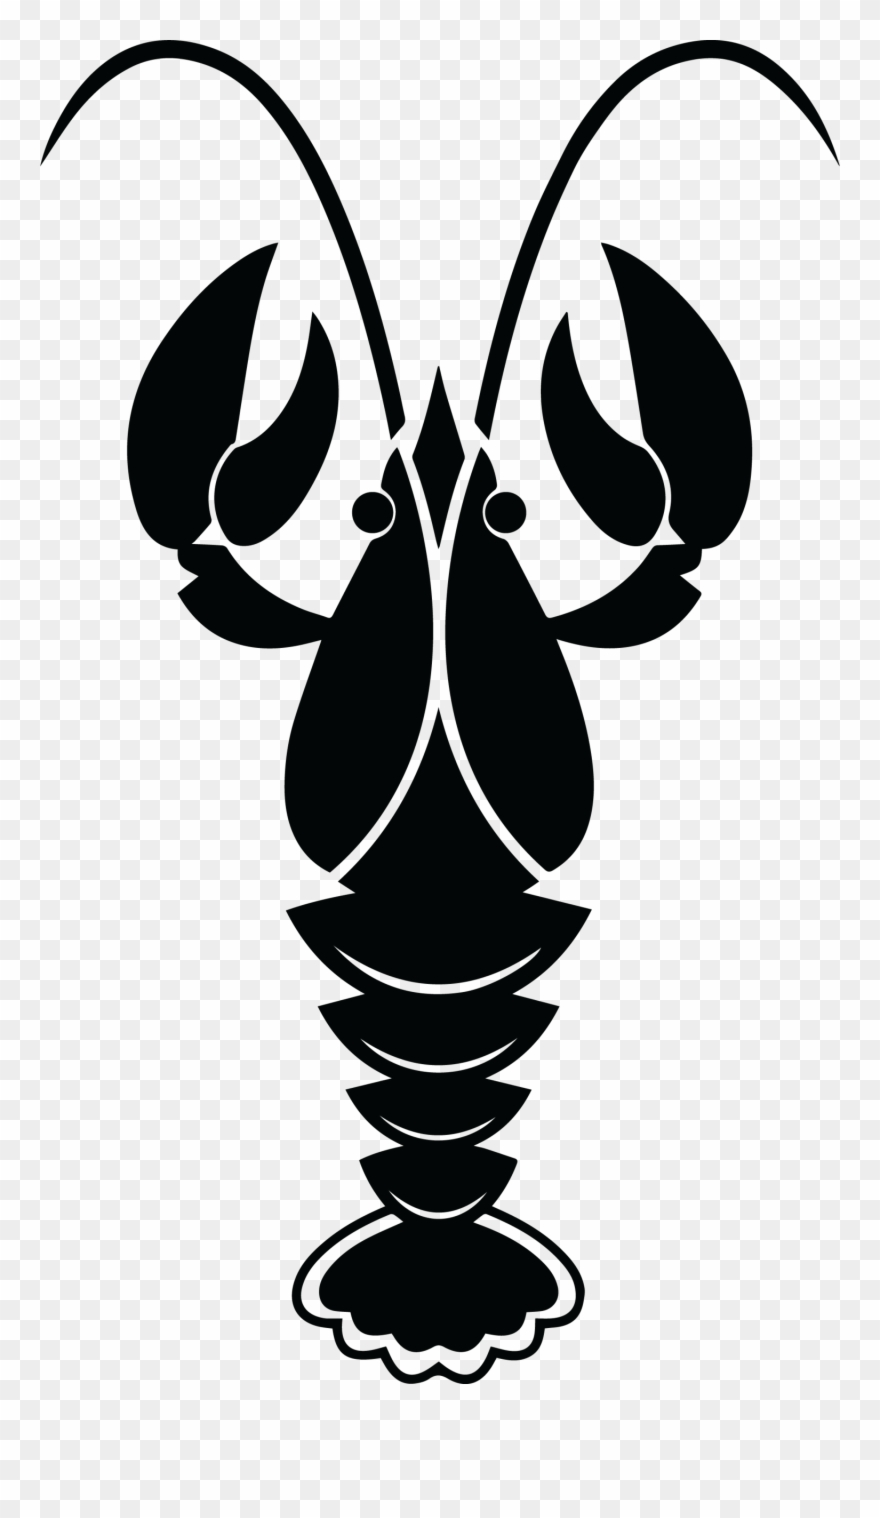 Crawfish clipart black and white. Clip art transparent png